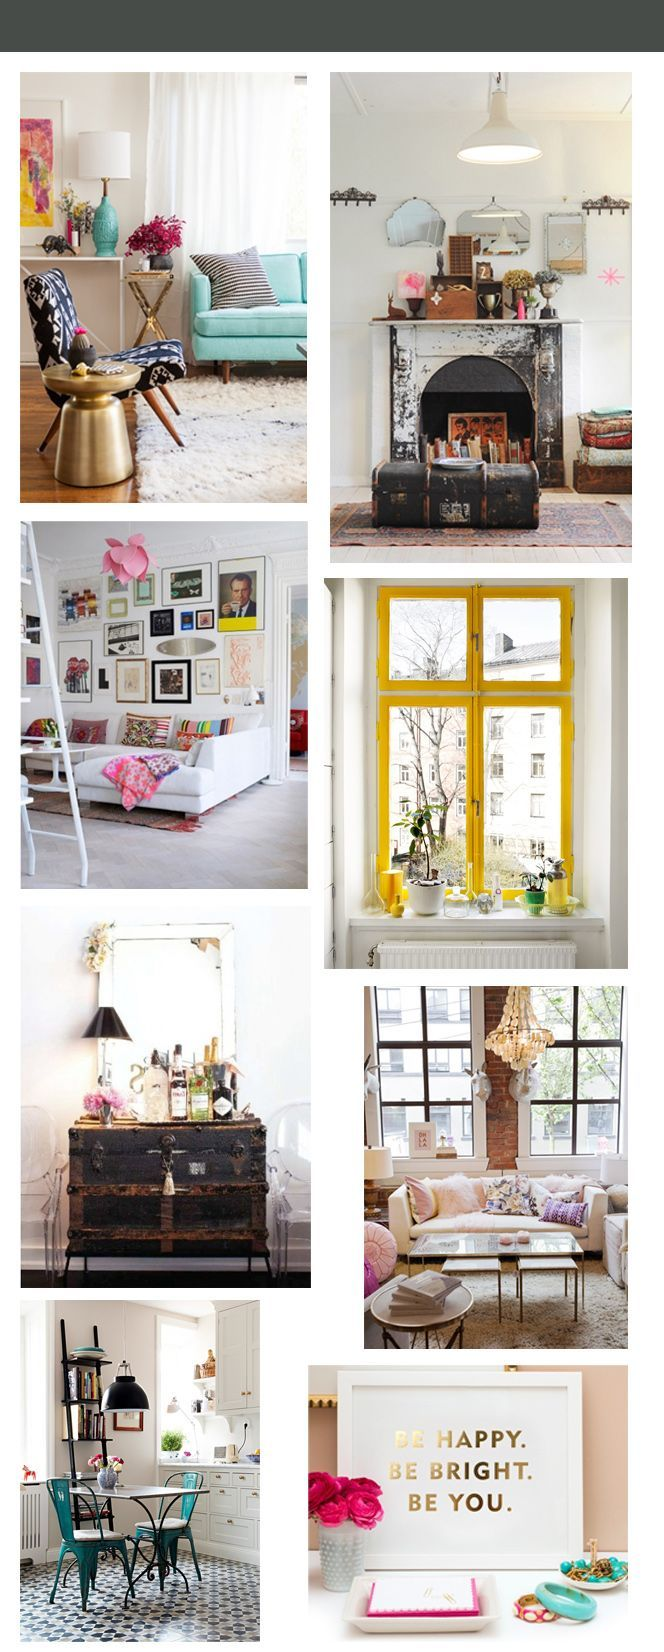 apartment decor inspiration the glossy guide: make your apartment a home-REALLY good tips in here... So cute!